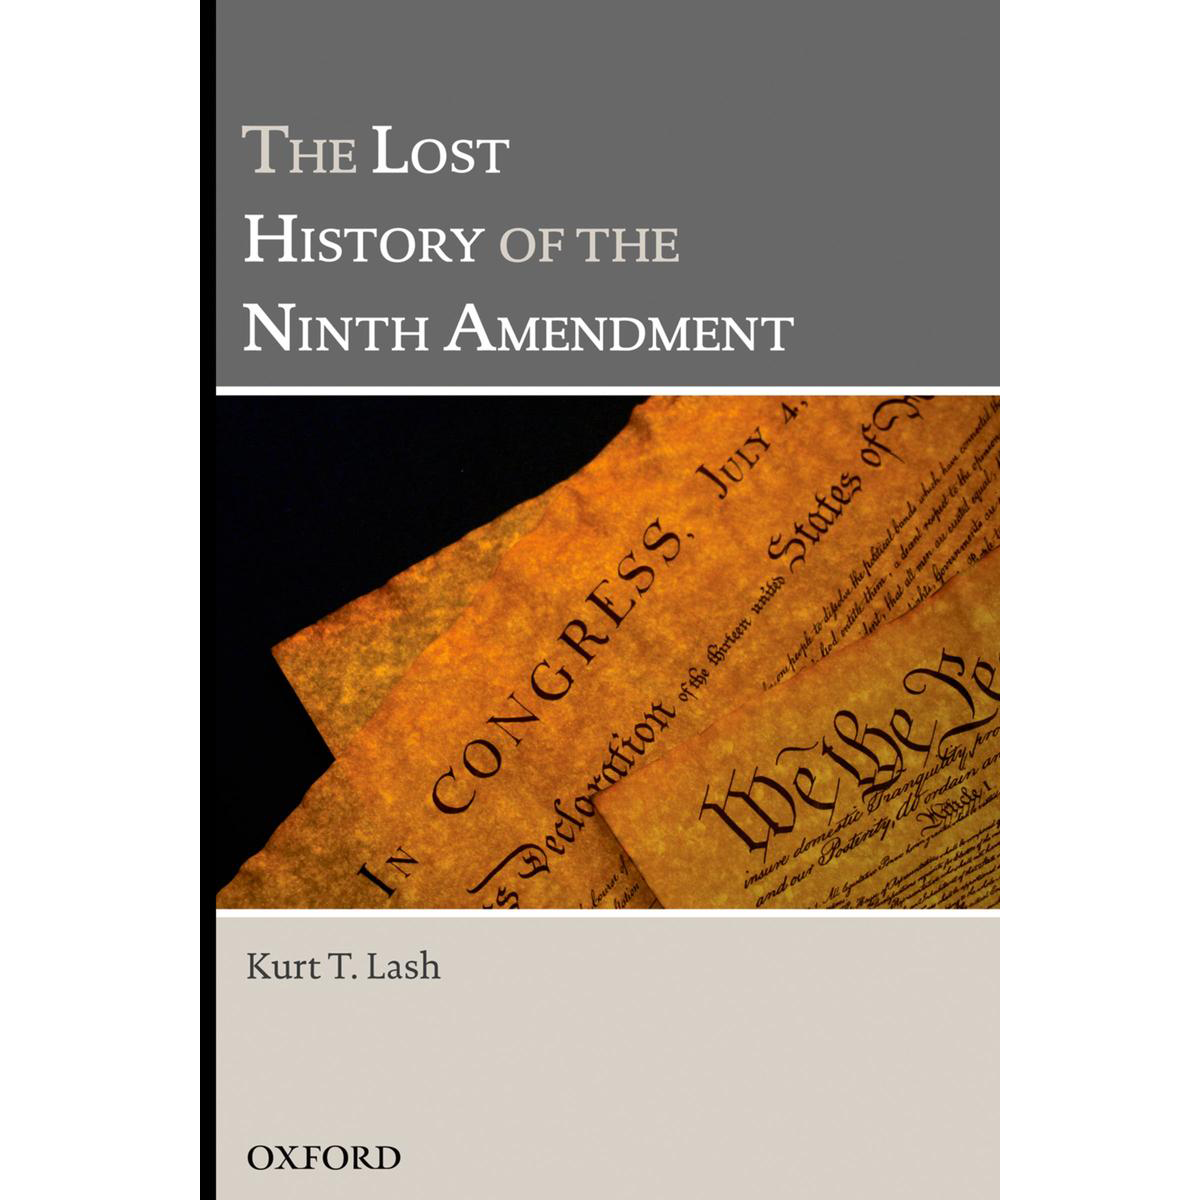 Amendment drawing popular sovereignty. The lost history of